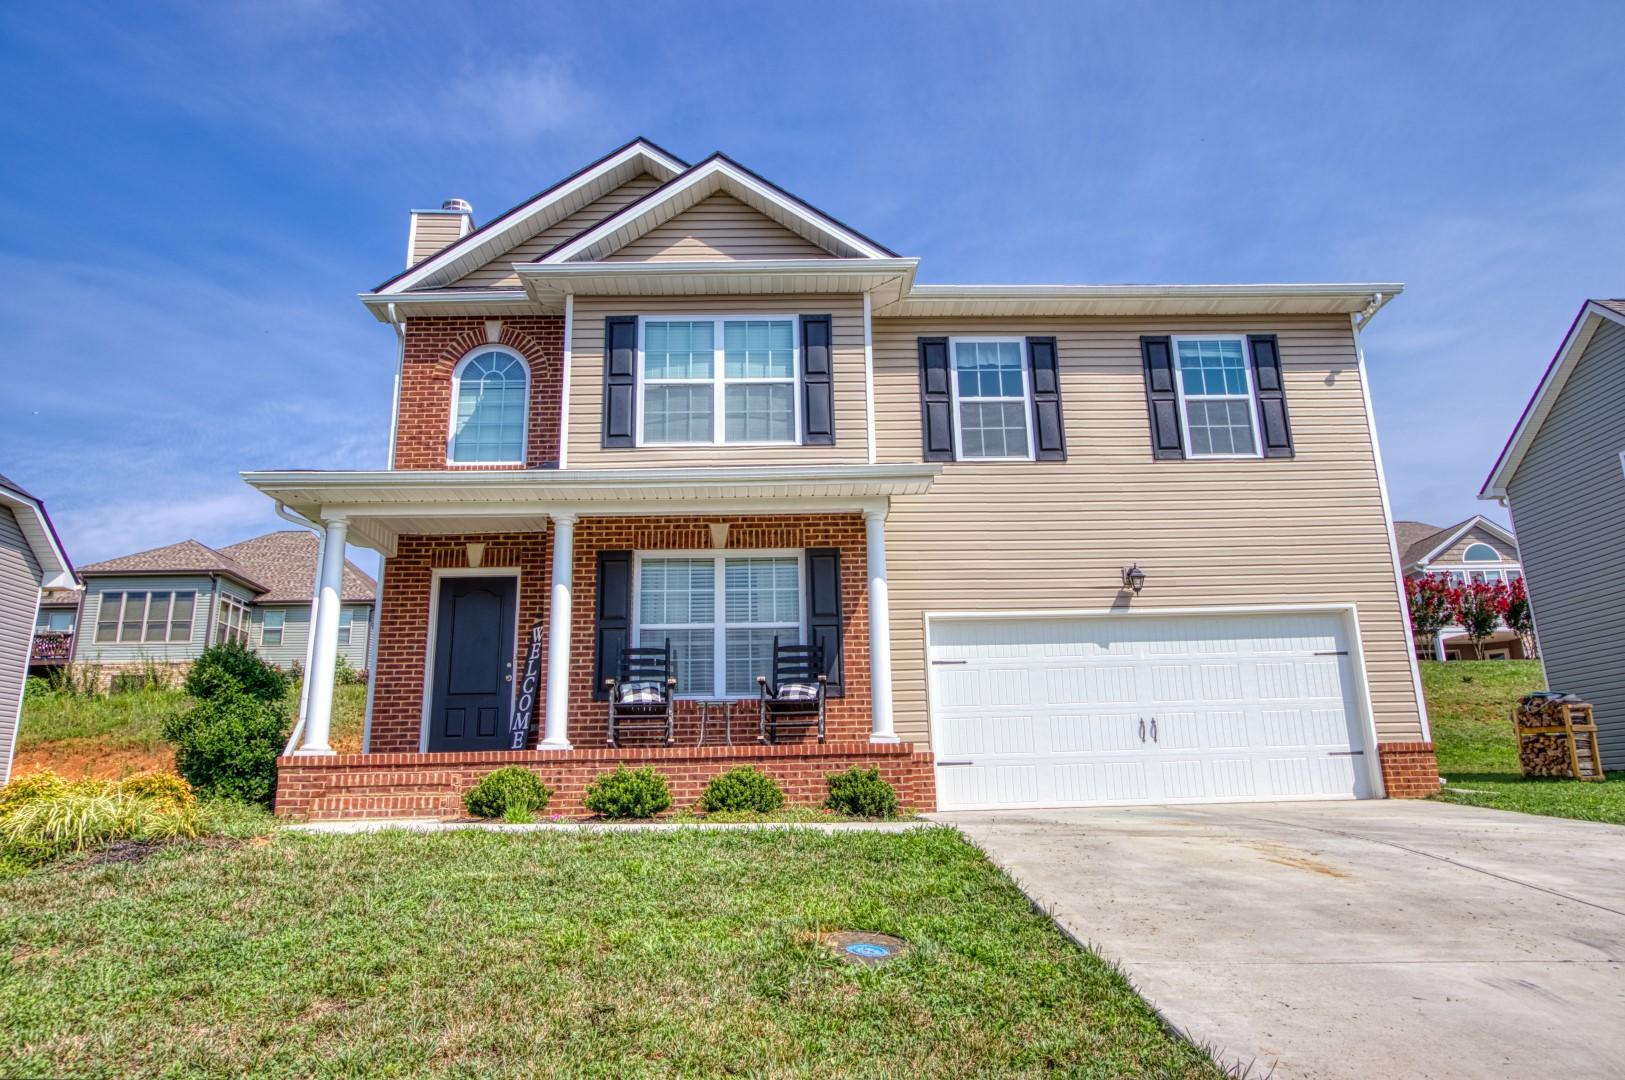 2824 Southwinds Circle, Sevierville, Tennessee 37876, 3 Bedrooms Bedrooms, ,2 BathroomsBathrooms,Single Family,For Sale,Southwinds,1126295